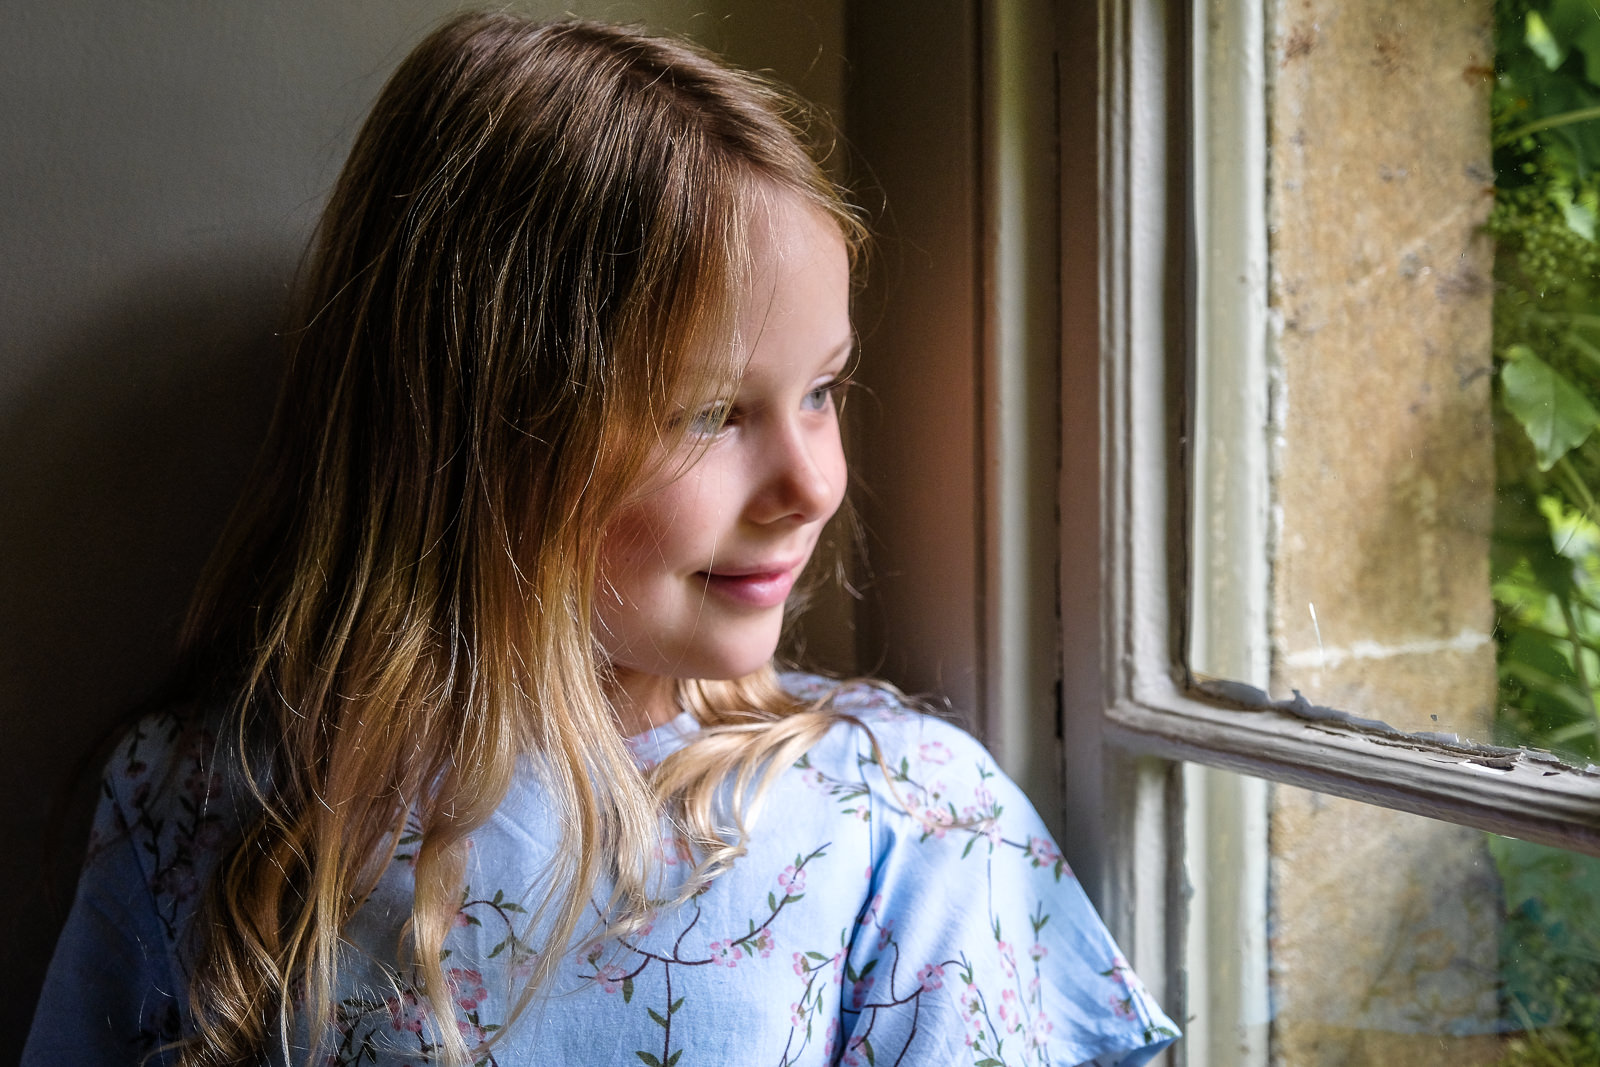 Cotswold family photo session - portrait of young girl with natural window light